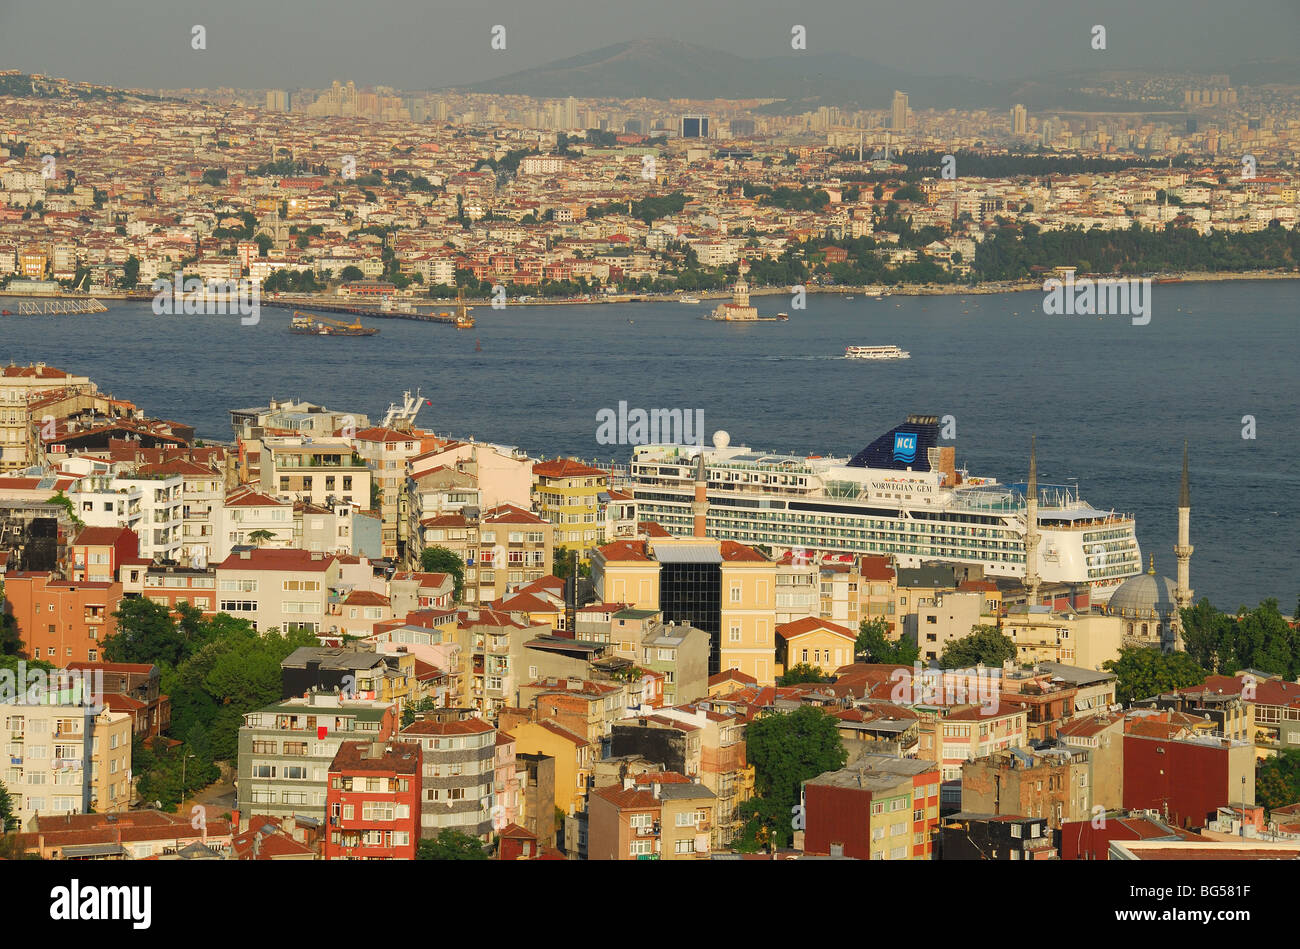 ISTANBUL, TURKEY. A view across the Bosphorus, from the European shore to Uskudar on the Asian shore of the city. - Stock Image